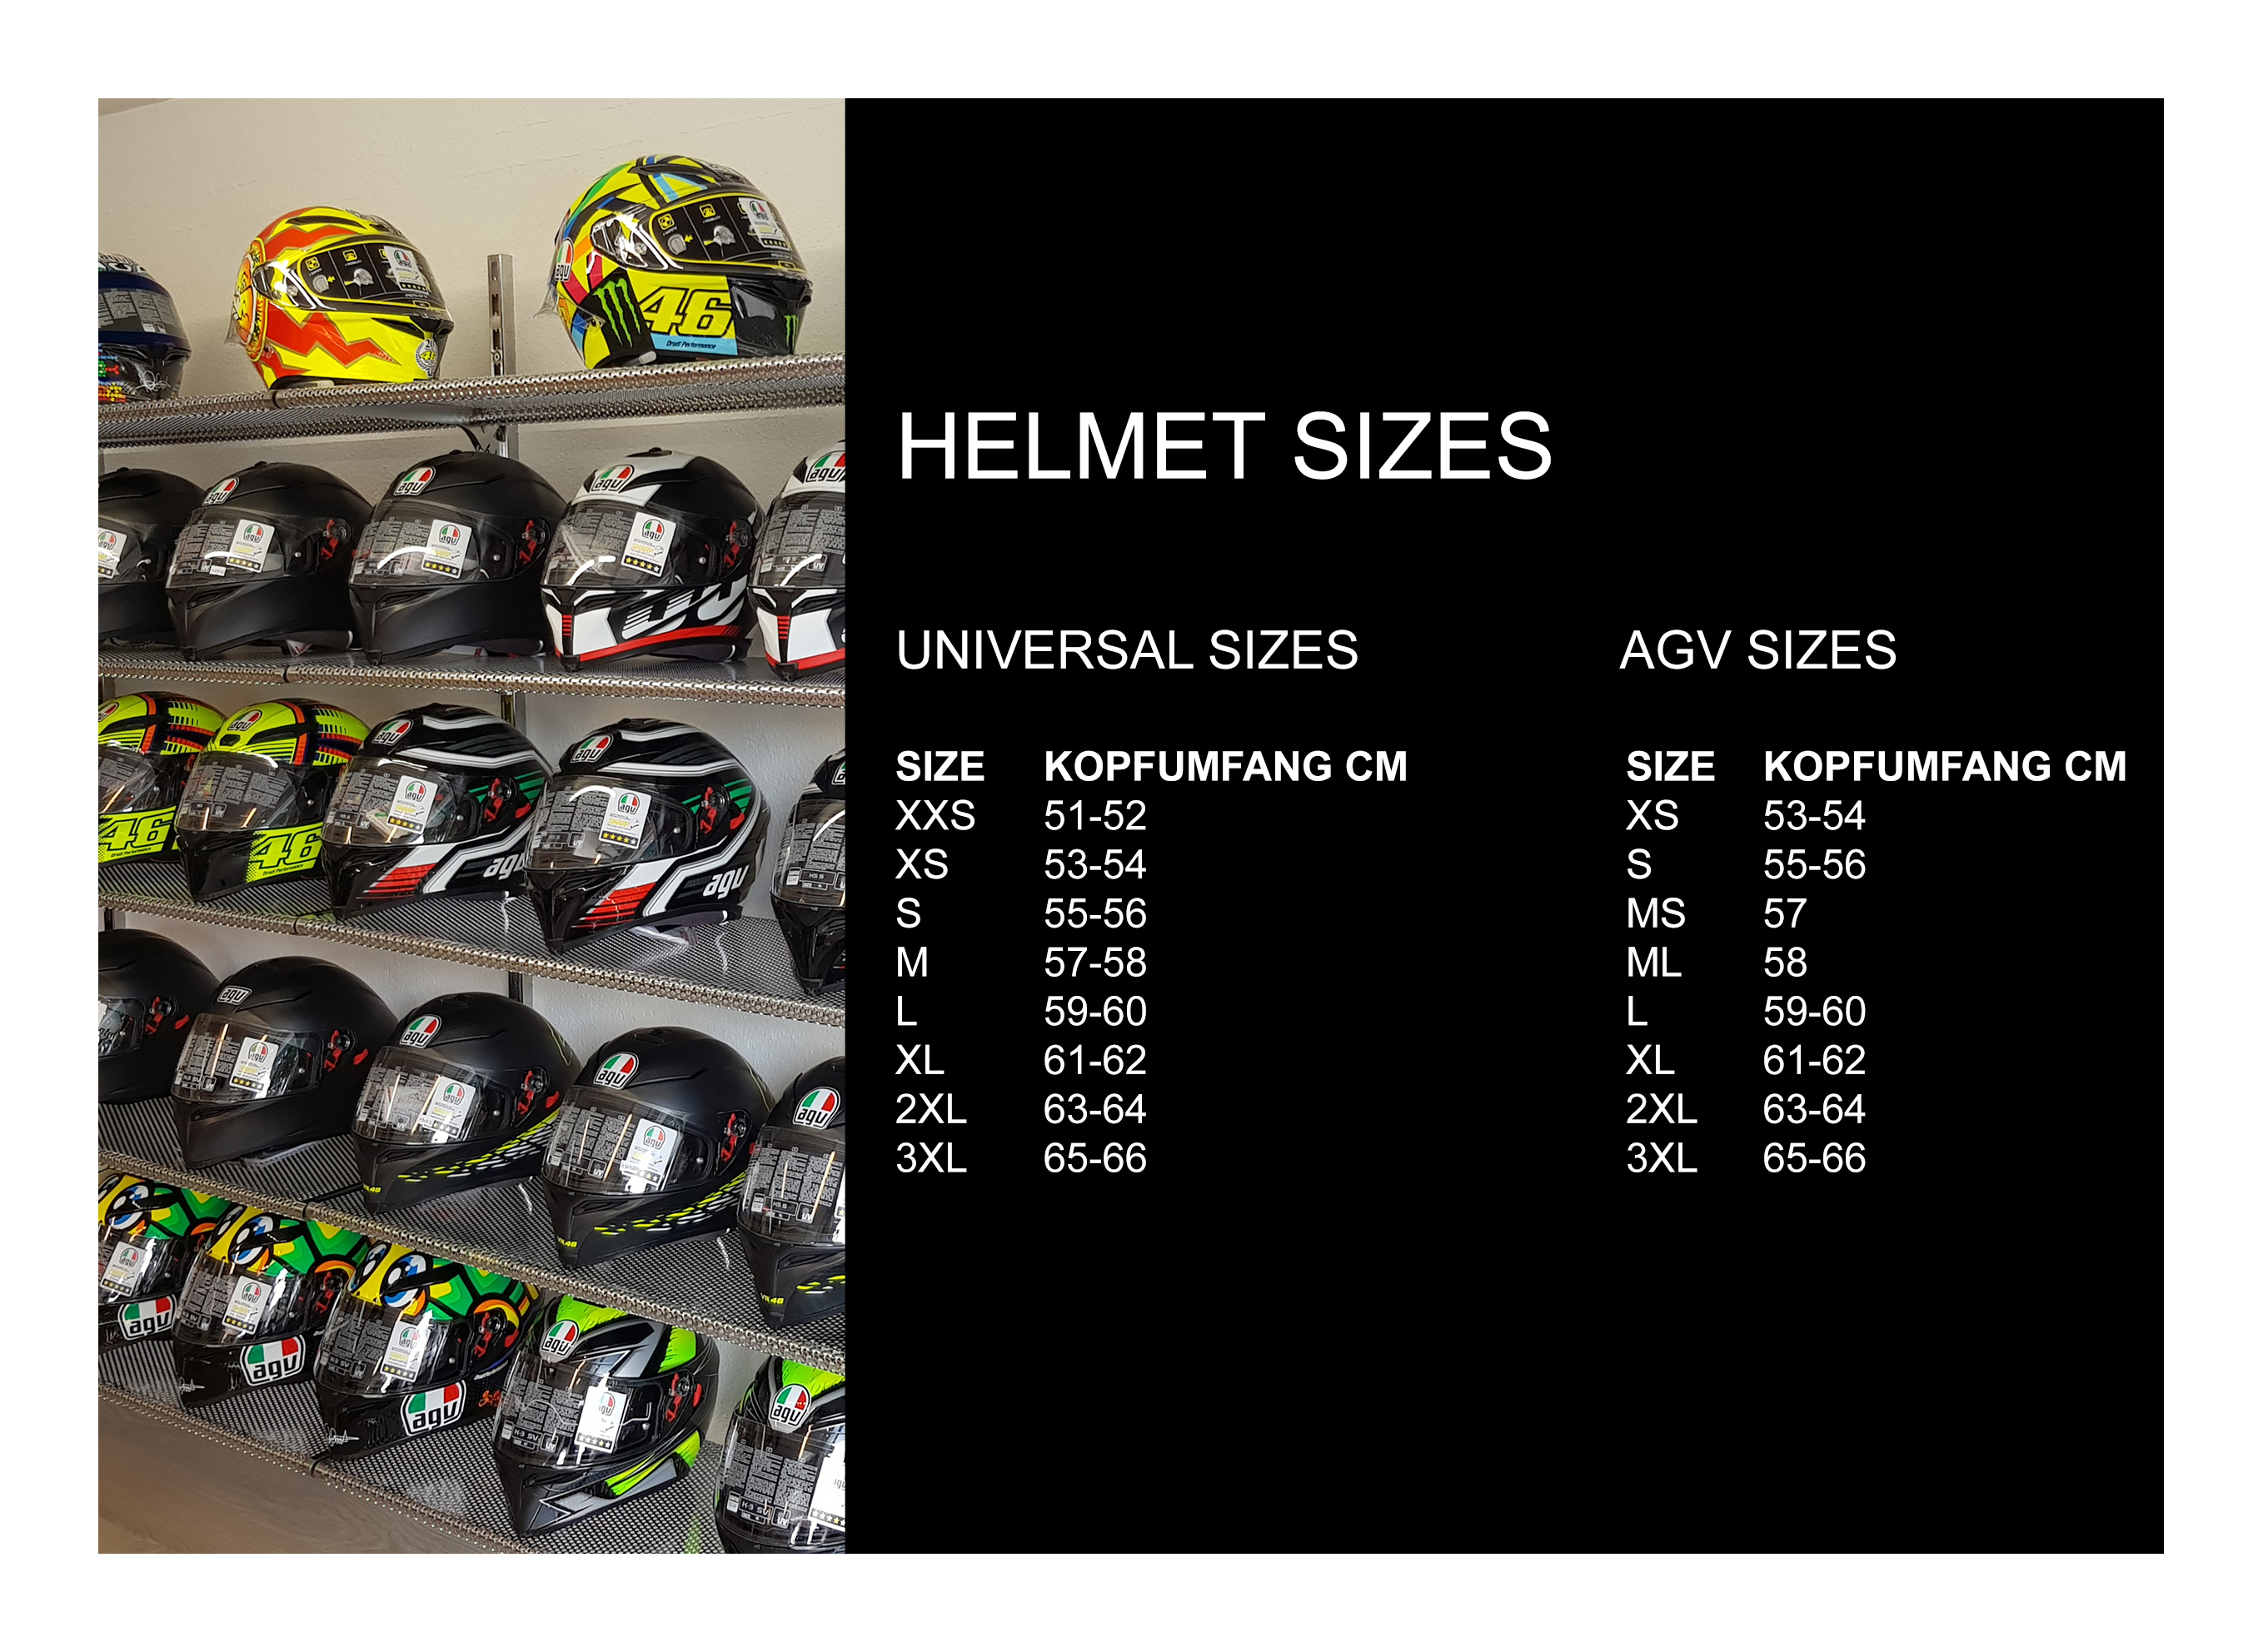 helmet sizes